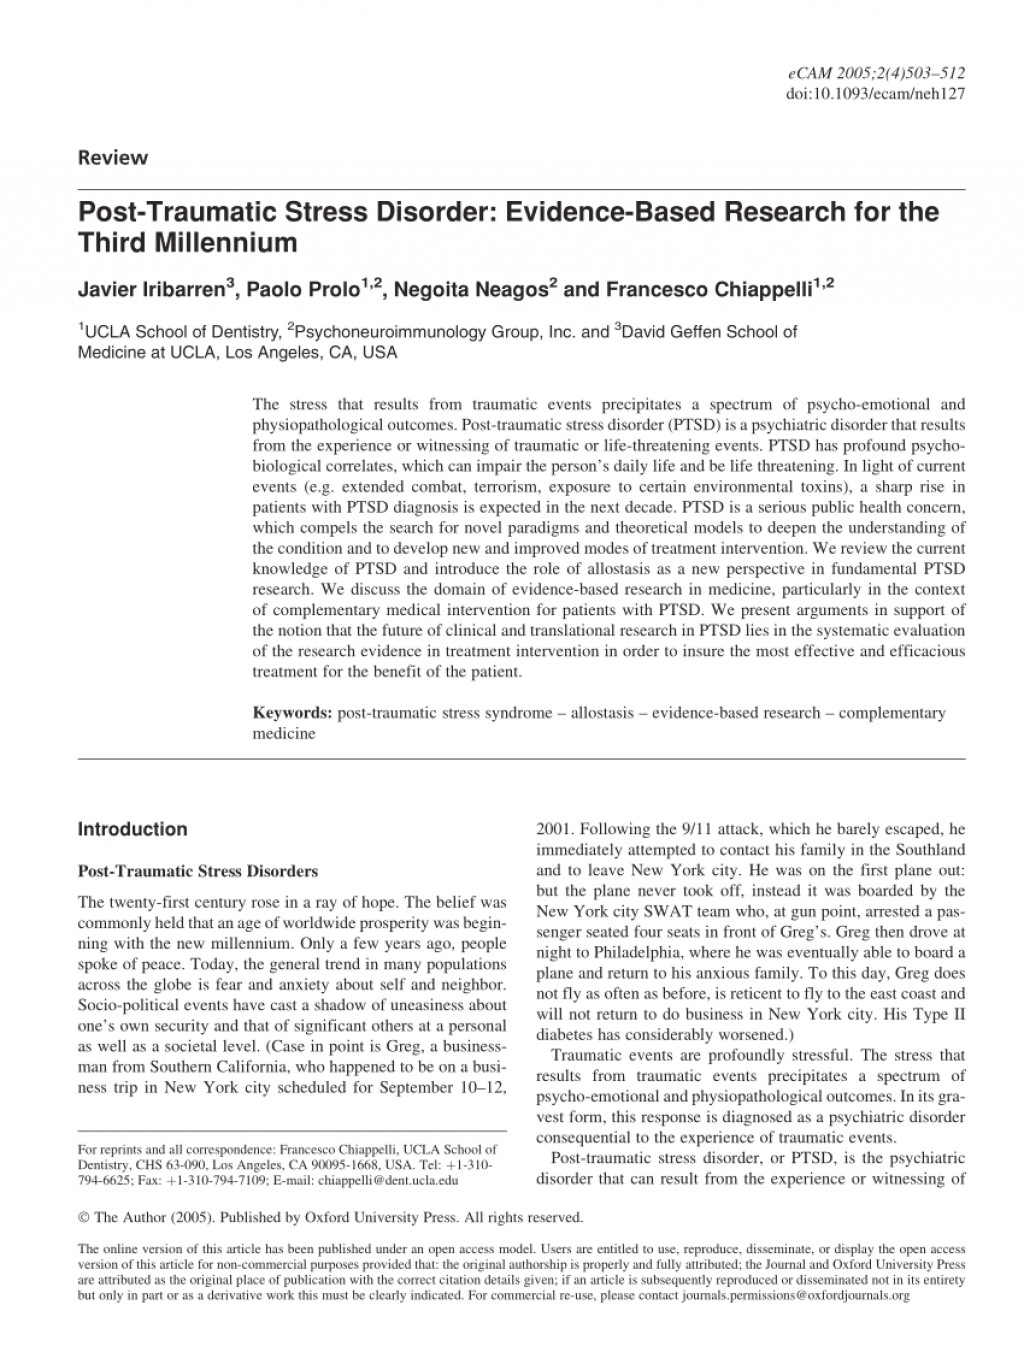 006 Research Paper Latest On Post Traumatic Stress Disorder Magnificent Information Topics Large